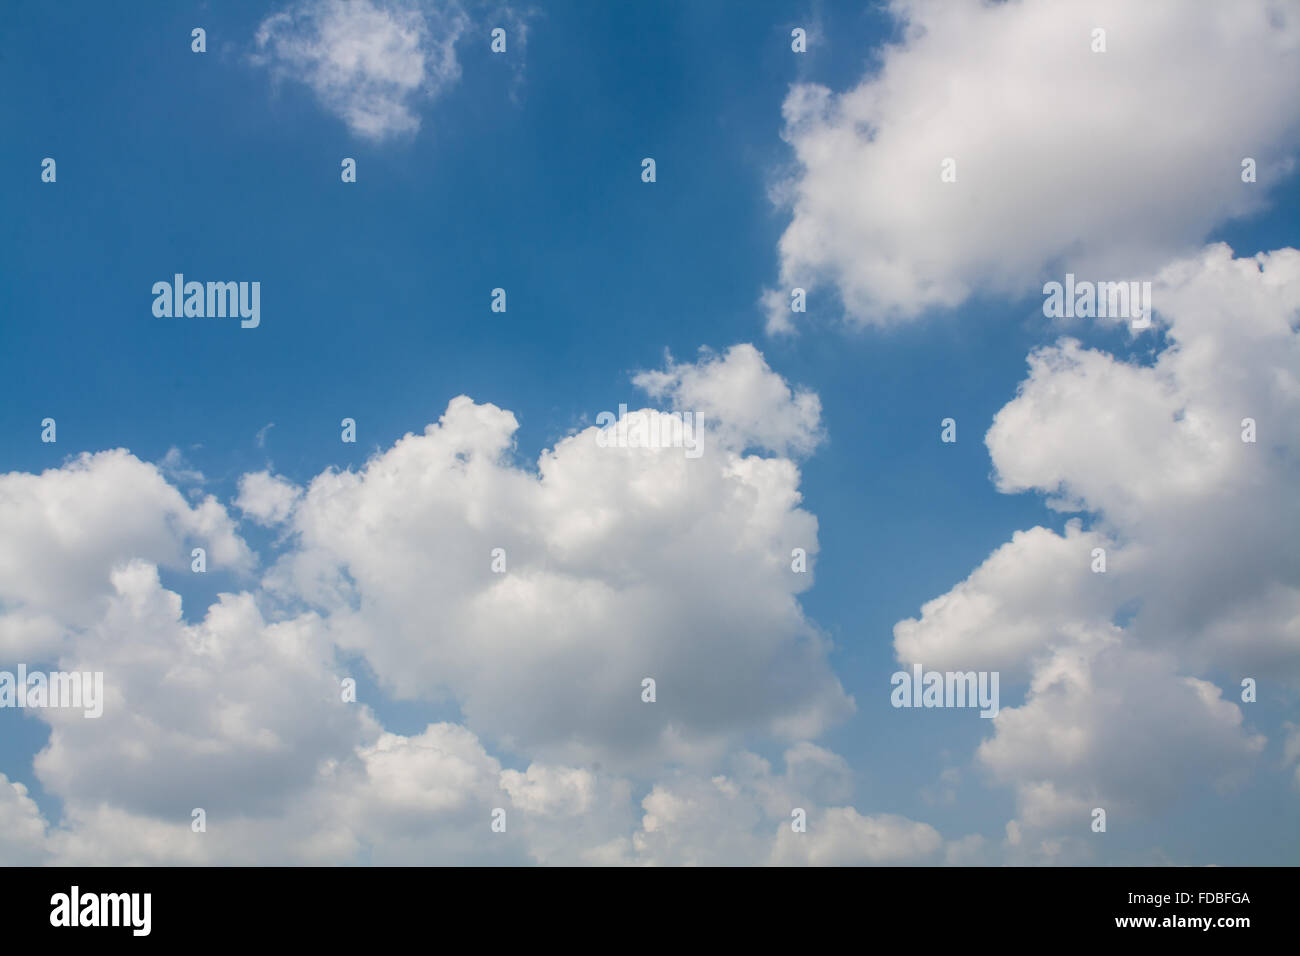 beautiful blue sky with white clouds wallpaper stock photo: 94296058